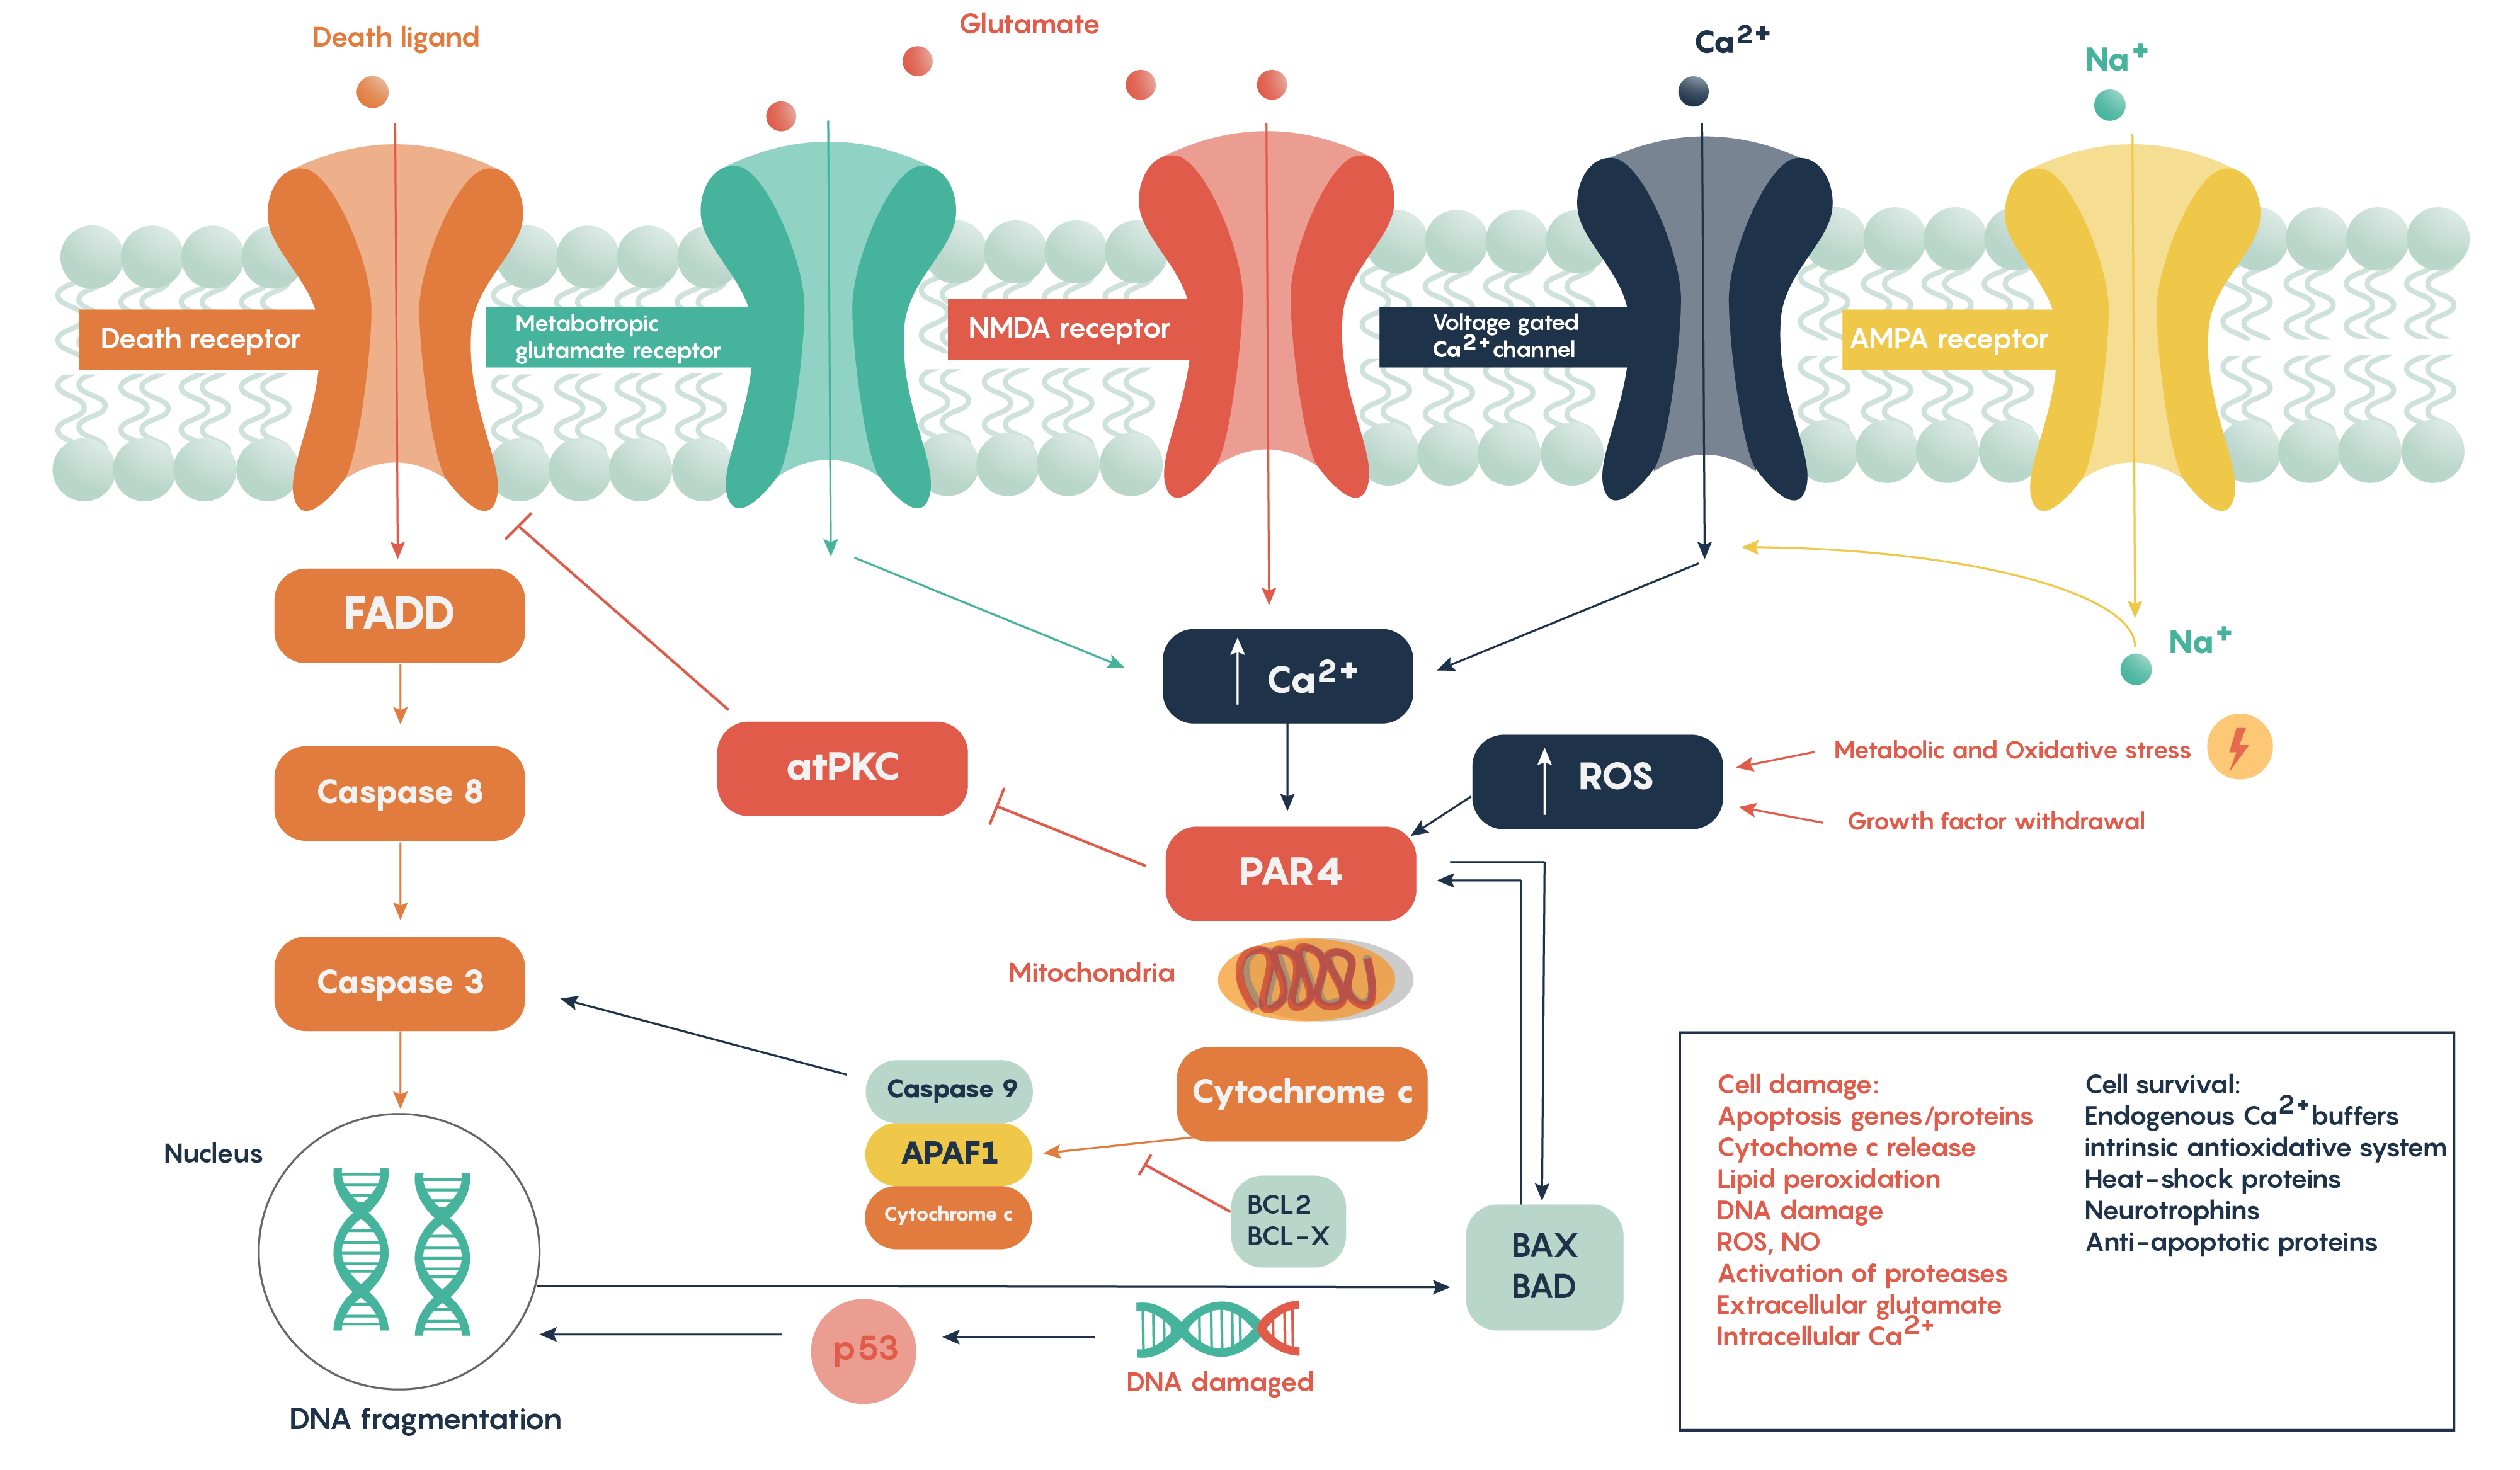 Molecular pathways outlining the role of glutamate in excitoxicity following stroke